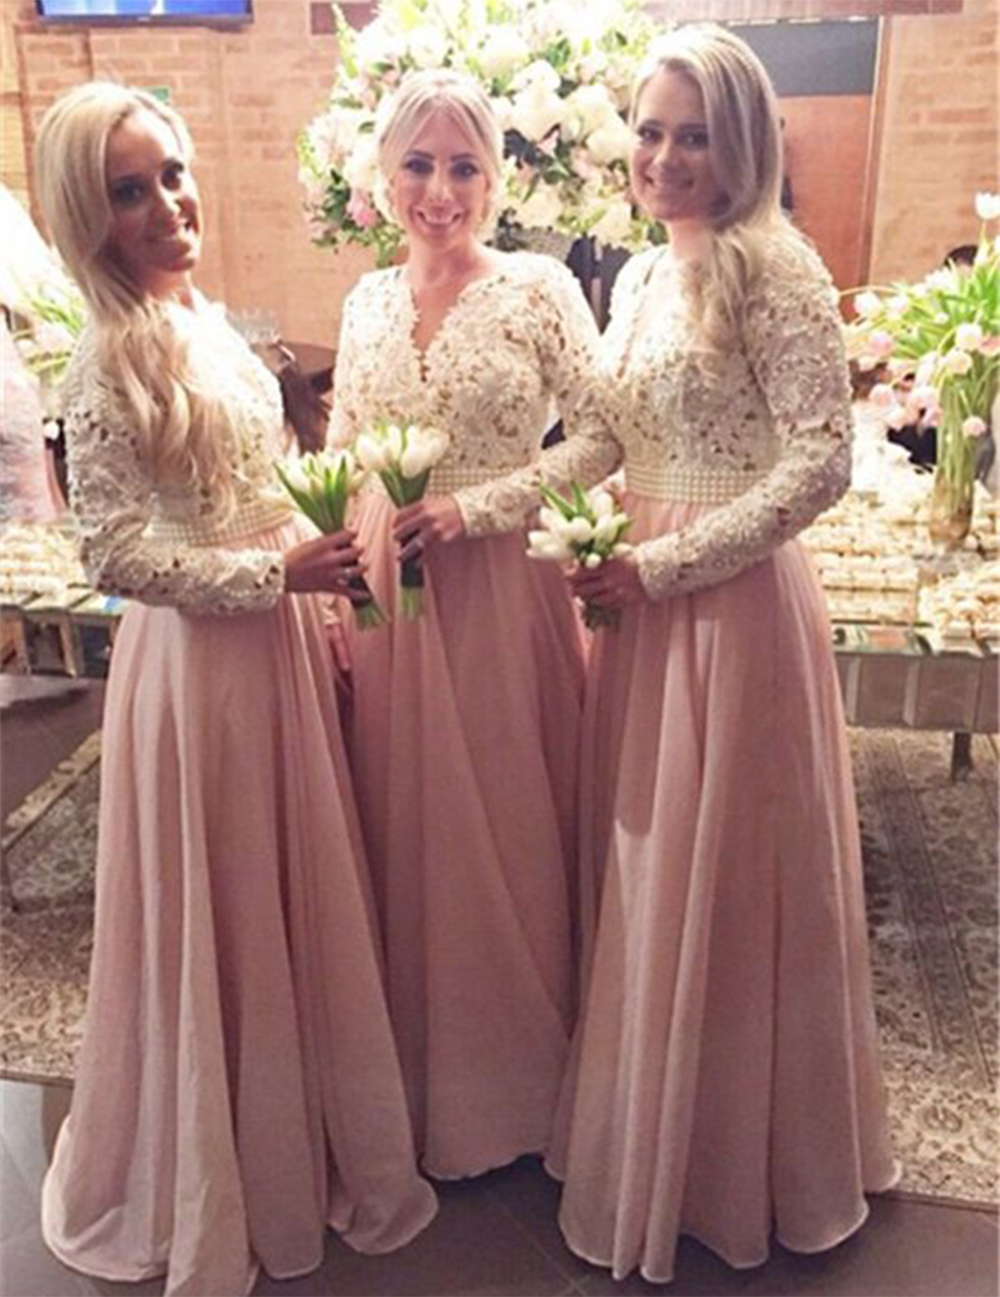 Beautiful pearls lace chiffon bridesmaid dresses pretty light pink beautiful pearls lace chiffon bridesmaid dresses pretty light pinkblush bridesmaid dress long sleeve bridesmaid gowns b104 in bridesmaid dresses from ombrellifo Image collections